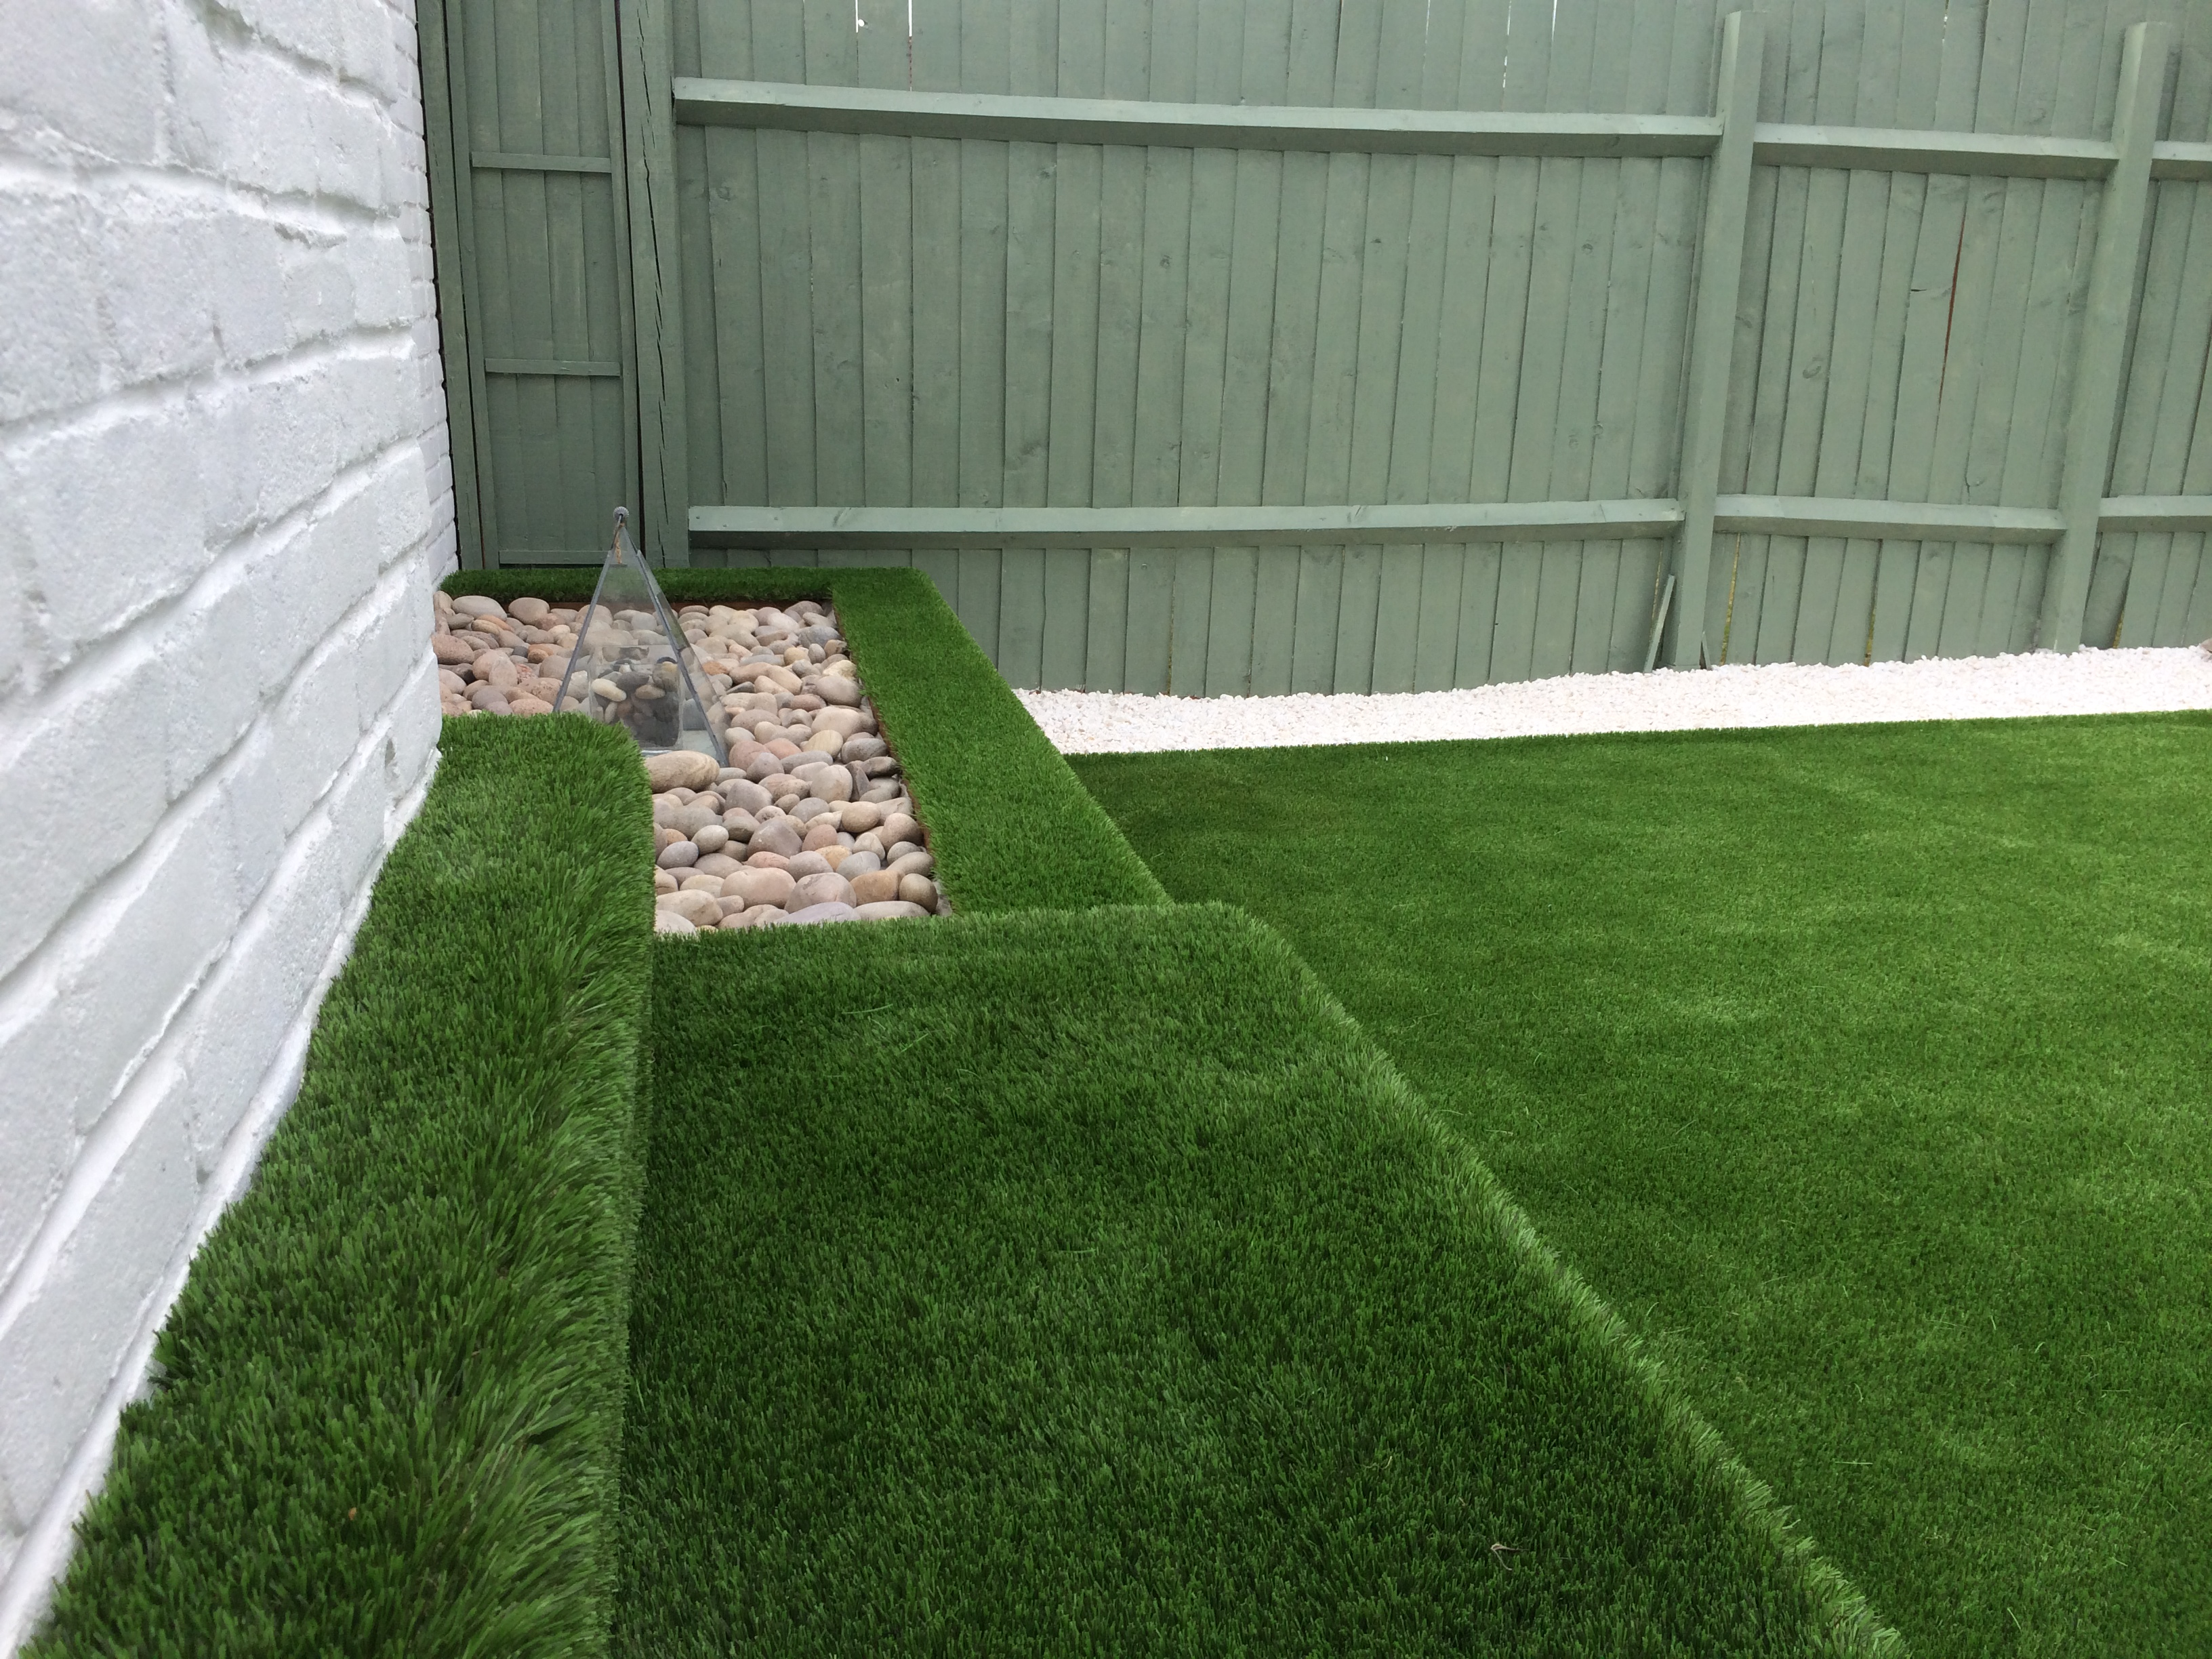 Bespoke grass clad seating areas